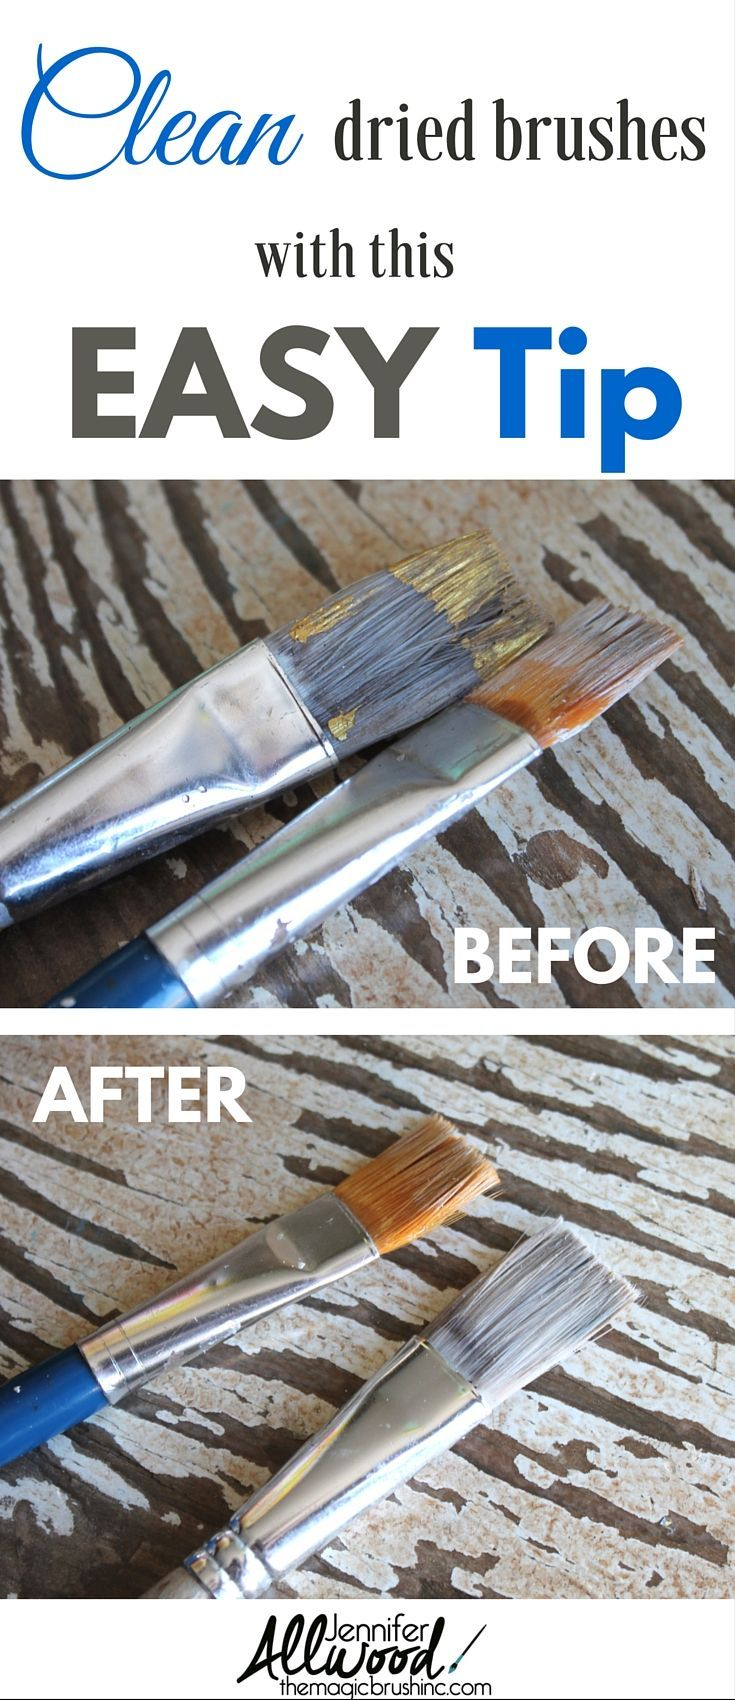 How to clean paintbrushes - 17 Best Ideas About Paint Brush Cleaning On Pinterest Cleaning Paint Brushes Painting Trim Tips And Tool Organization